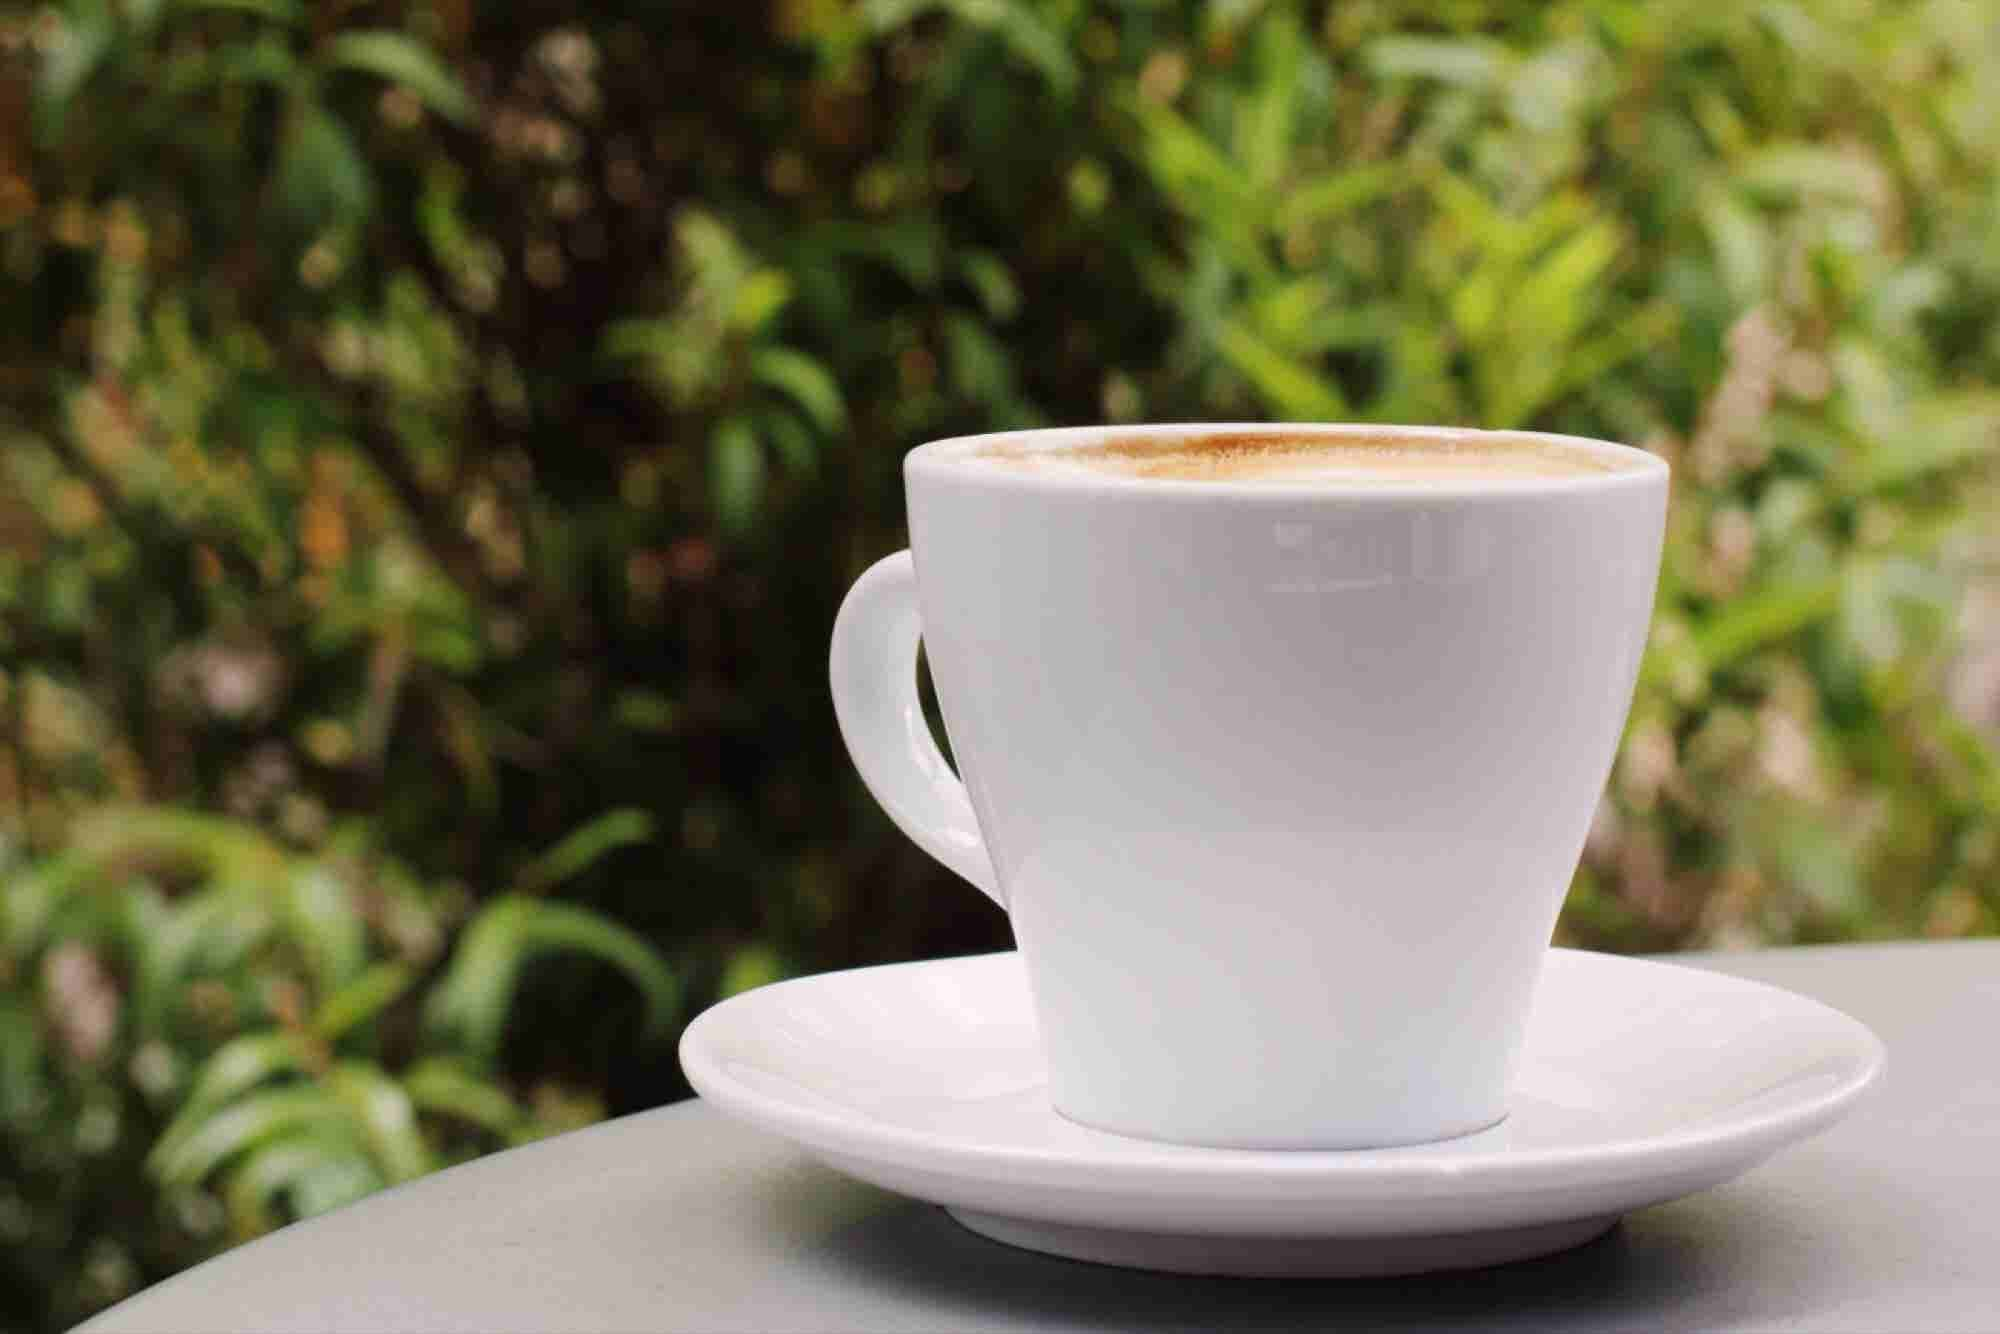 5 Great Coffee Shops to Work In Across the U.S.